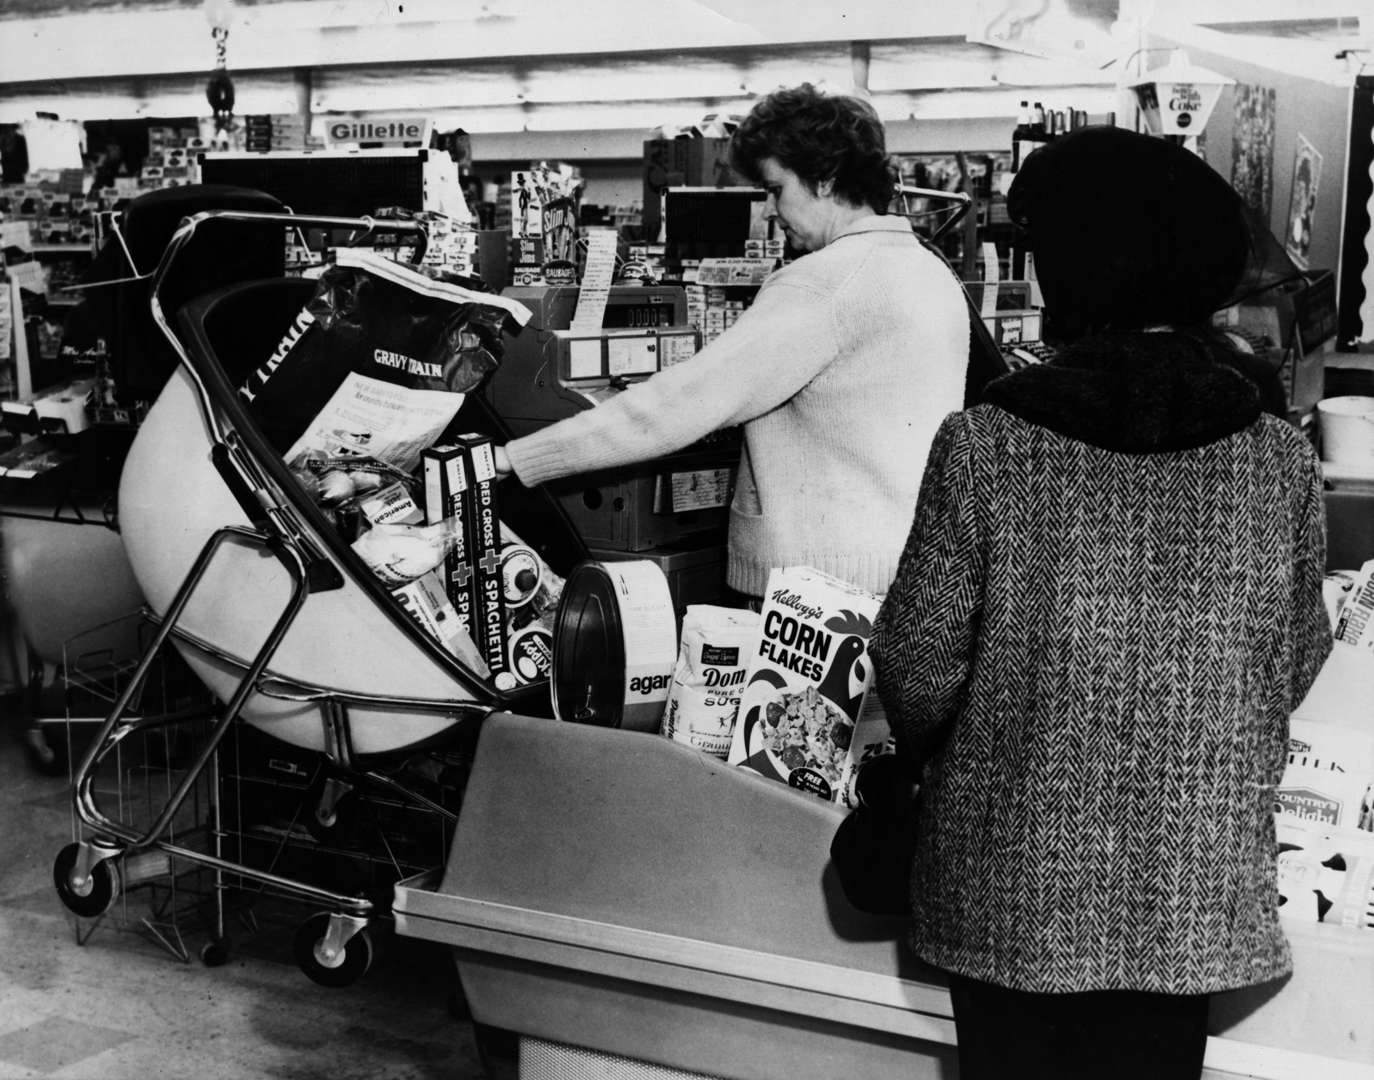 Slide 8 of 45: 25th August 1968: The new supermarket trolley called the 'Load-a-Matic' which can be unloaded by the cashier without help from the customer. It is being used in the USA.